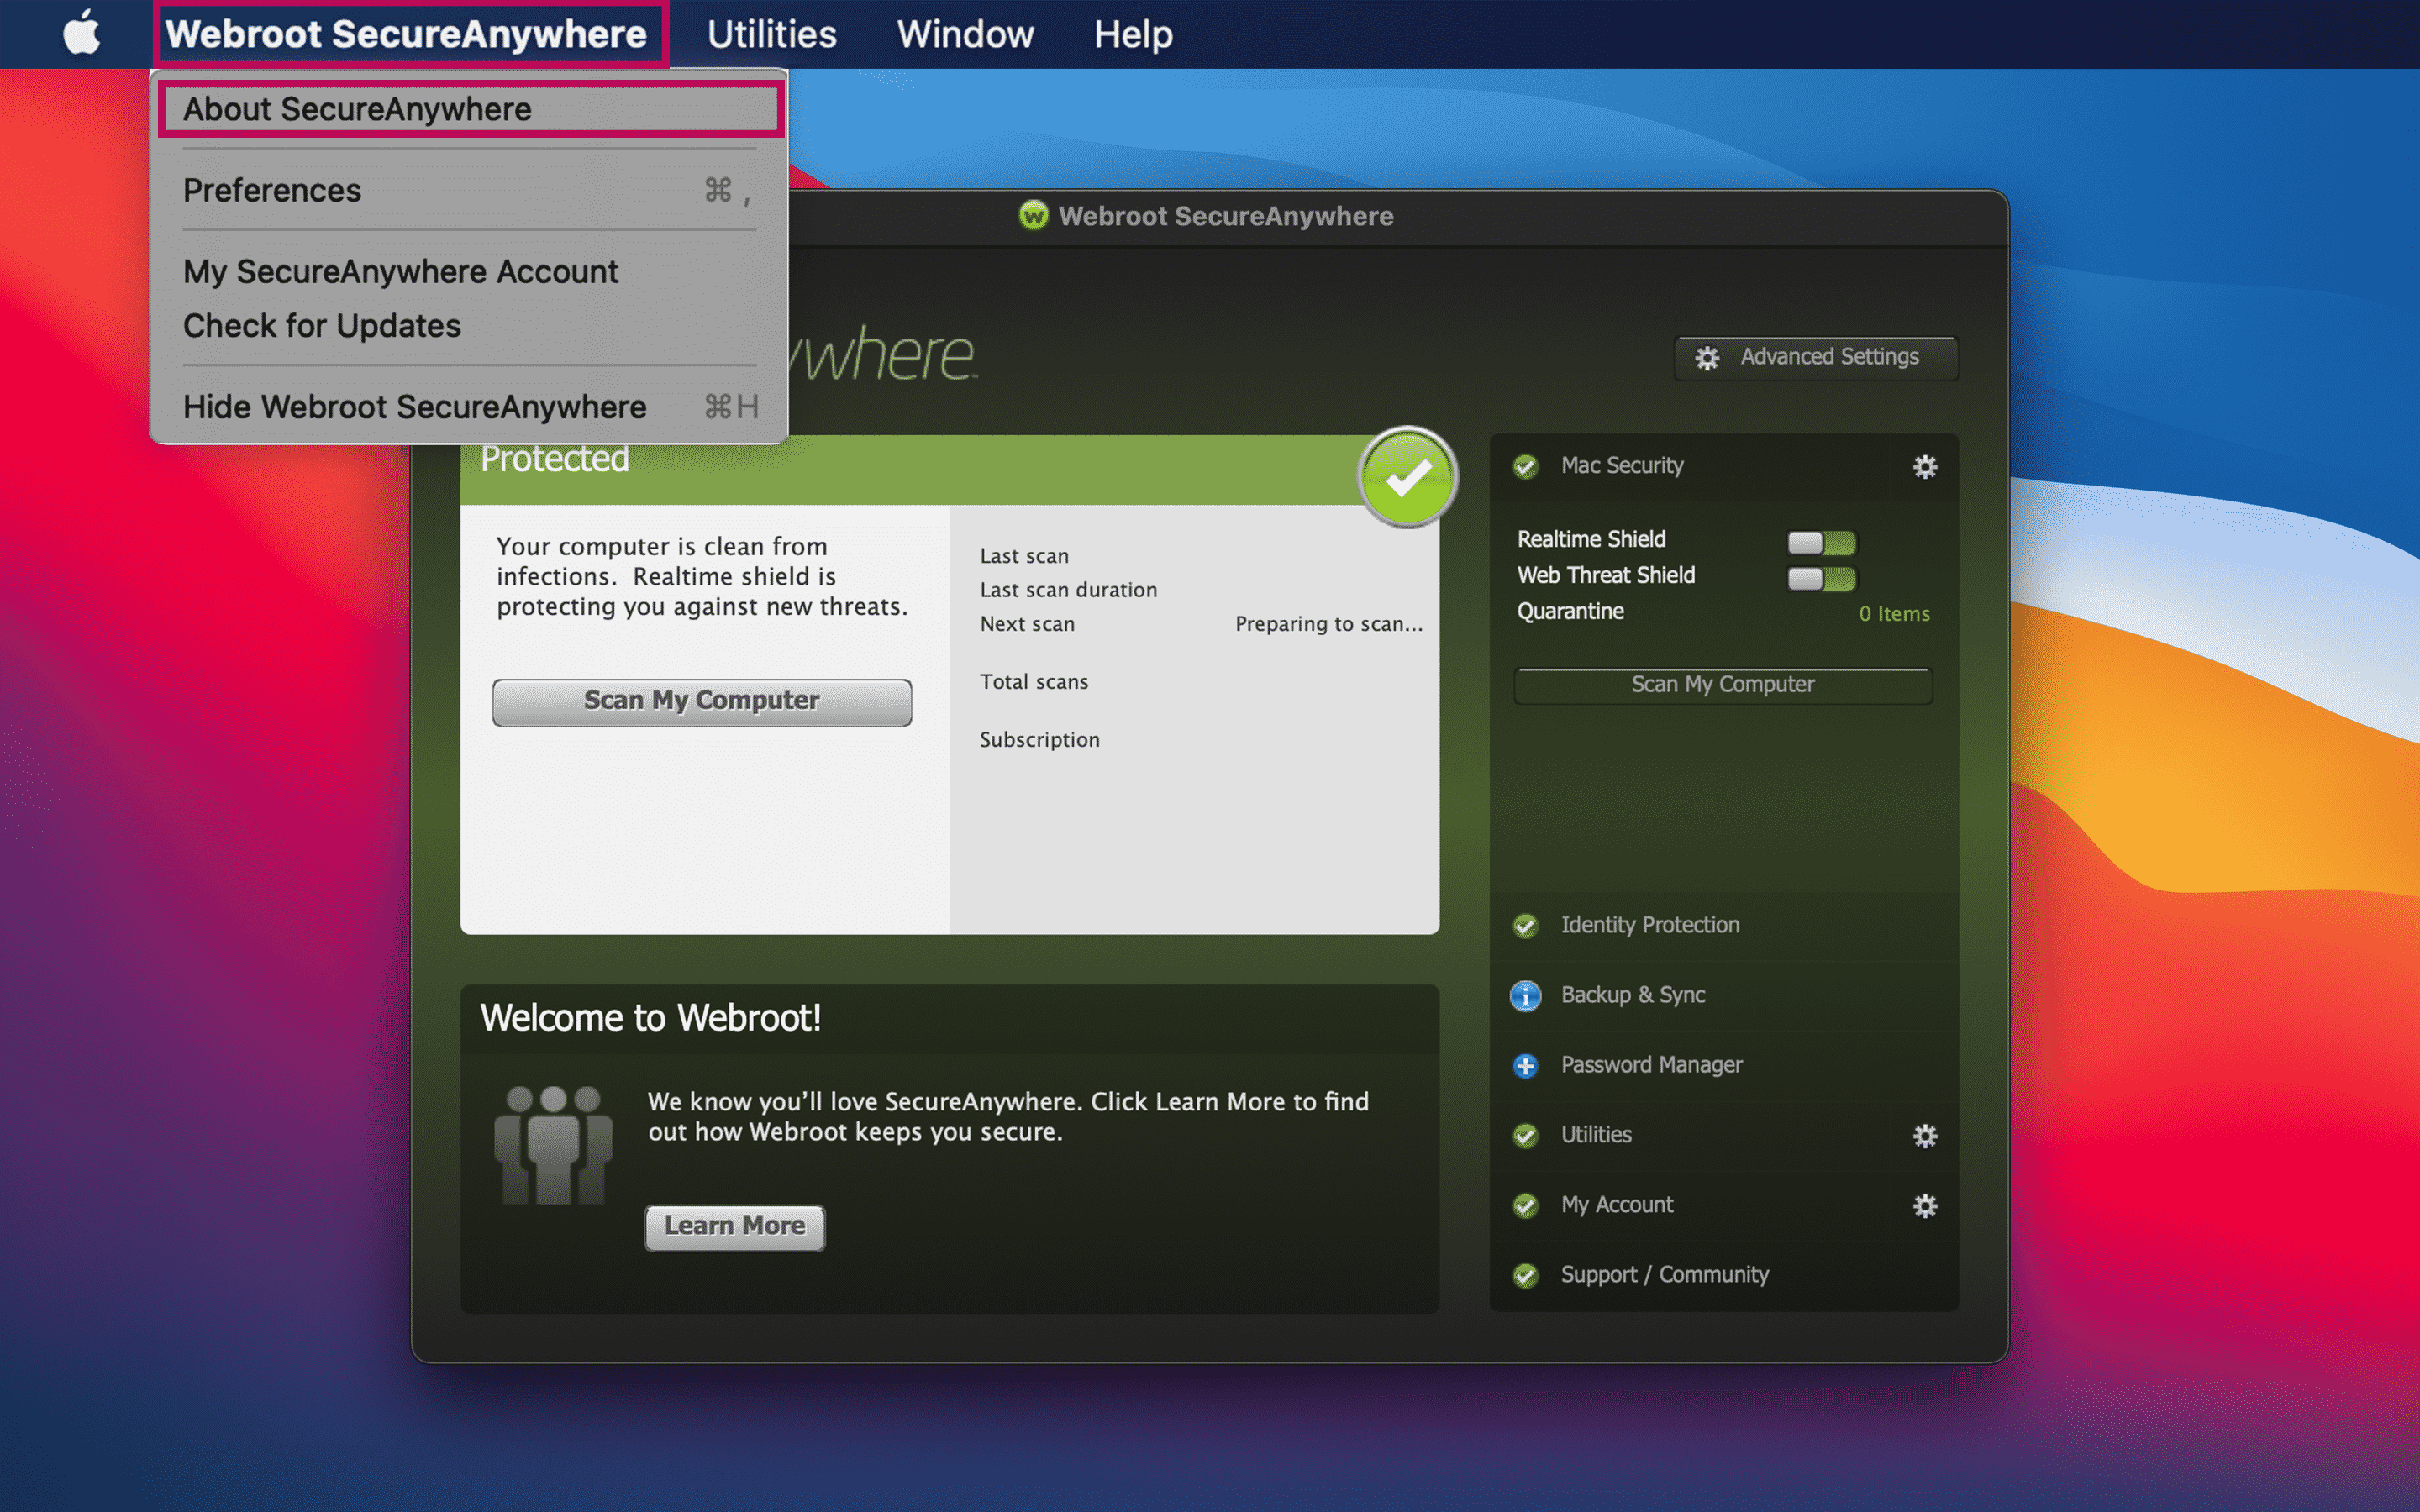 About Webroot SecureAnywhere command highlighted in menu bar